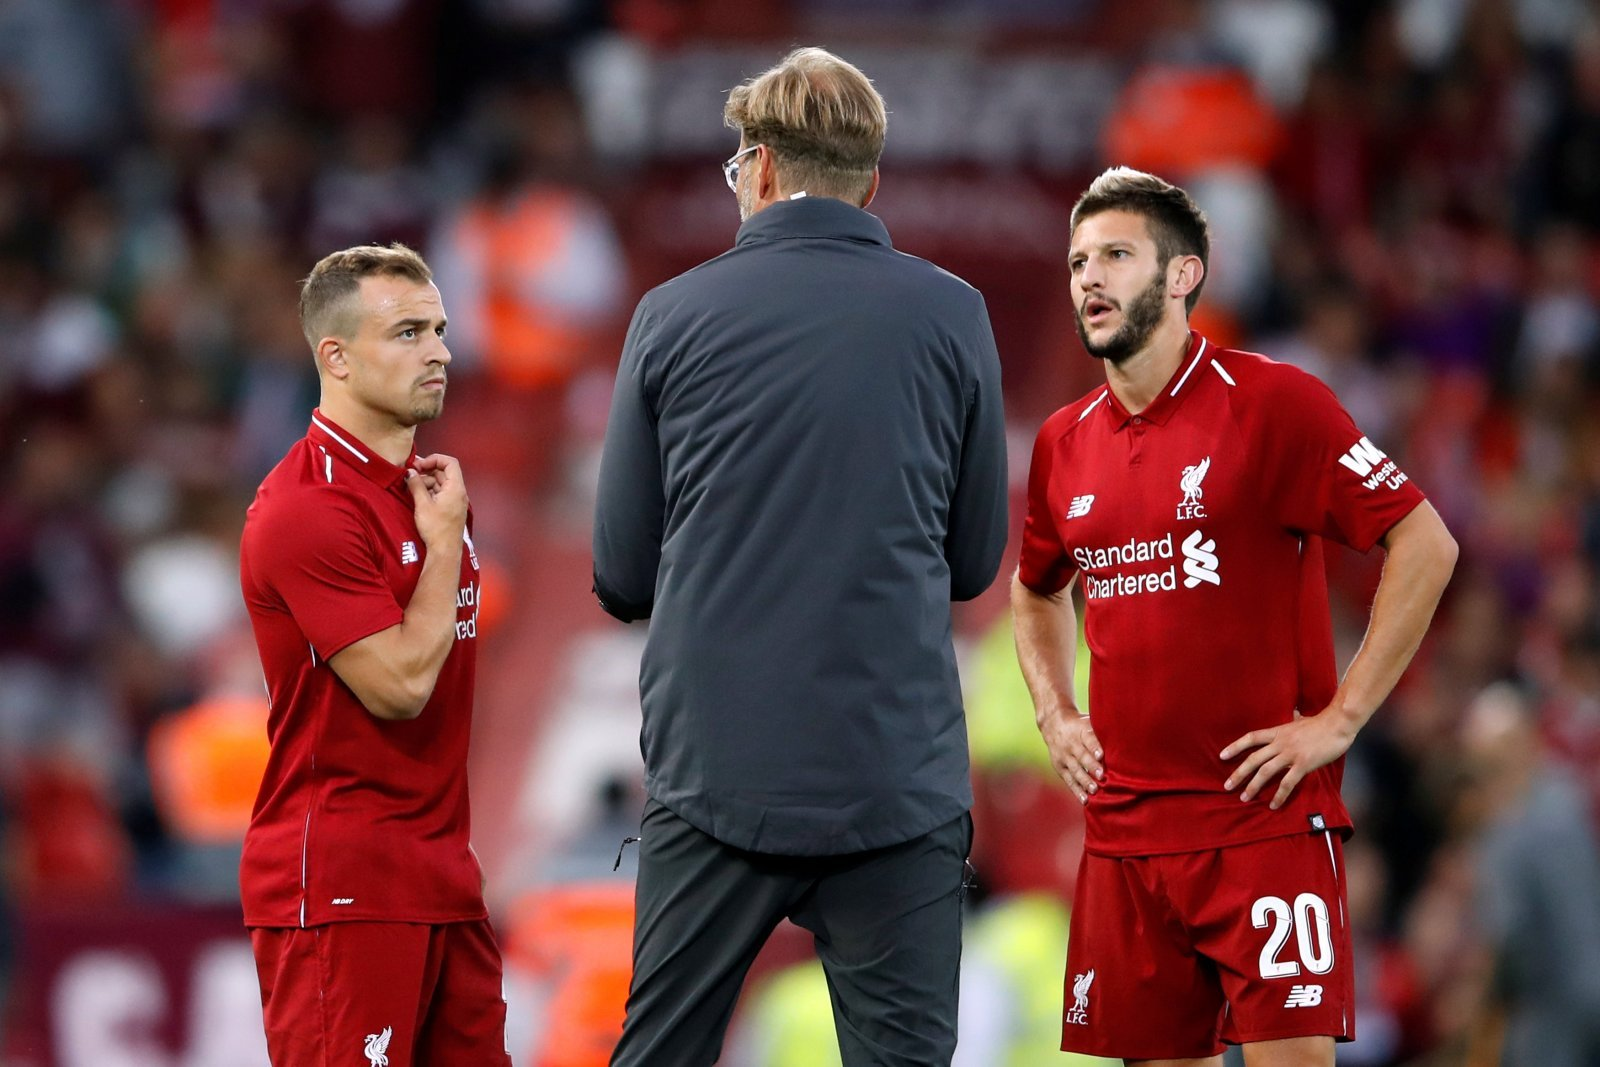 Klopp made a mistake by not offloading Adam Lallana